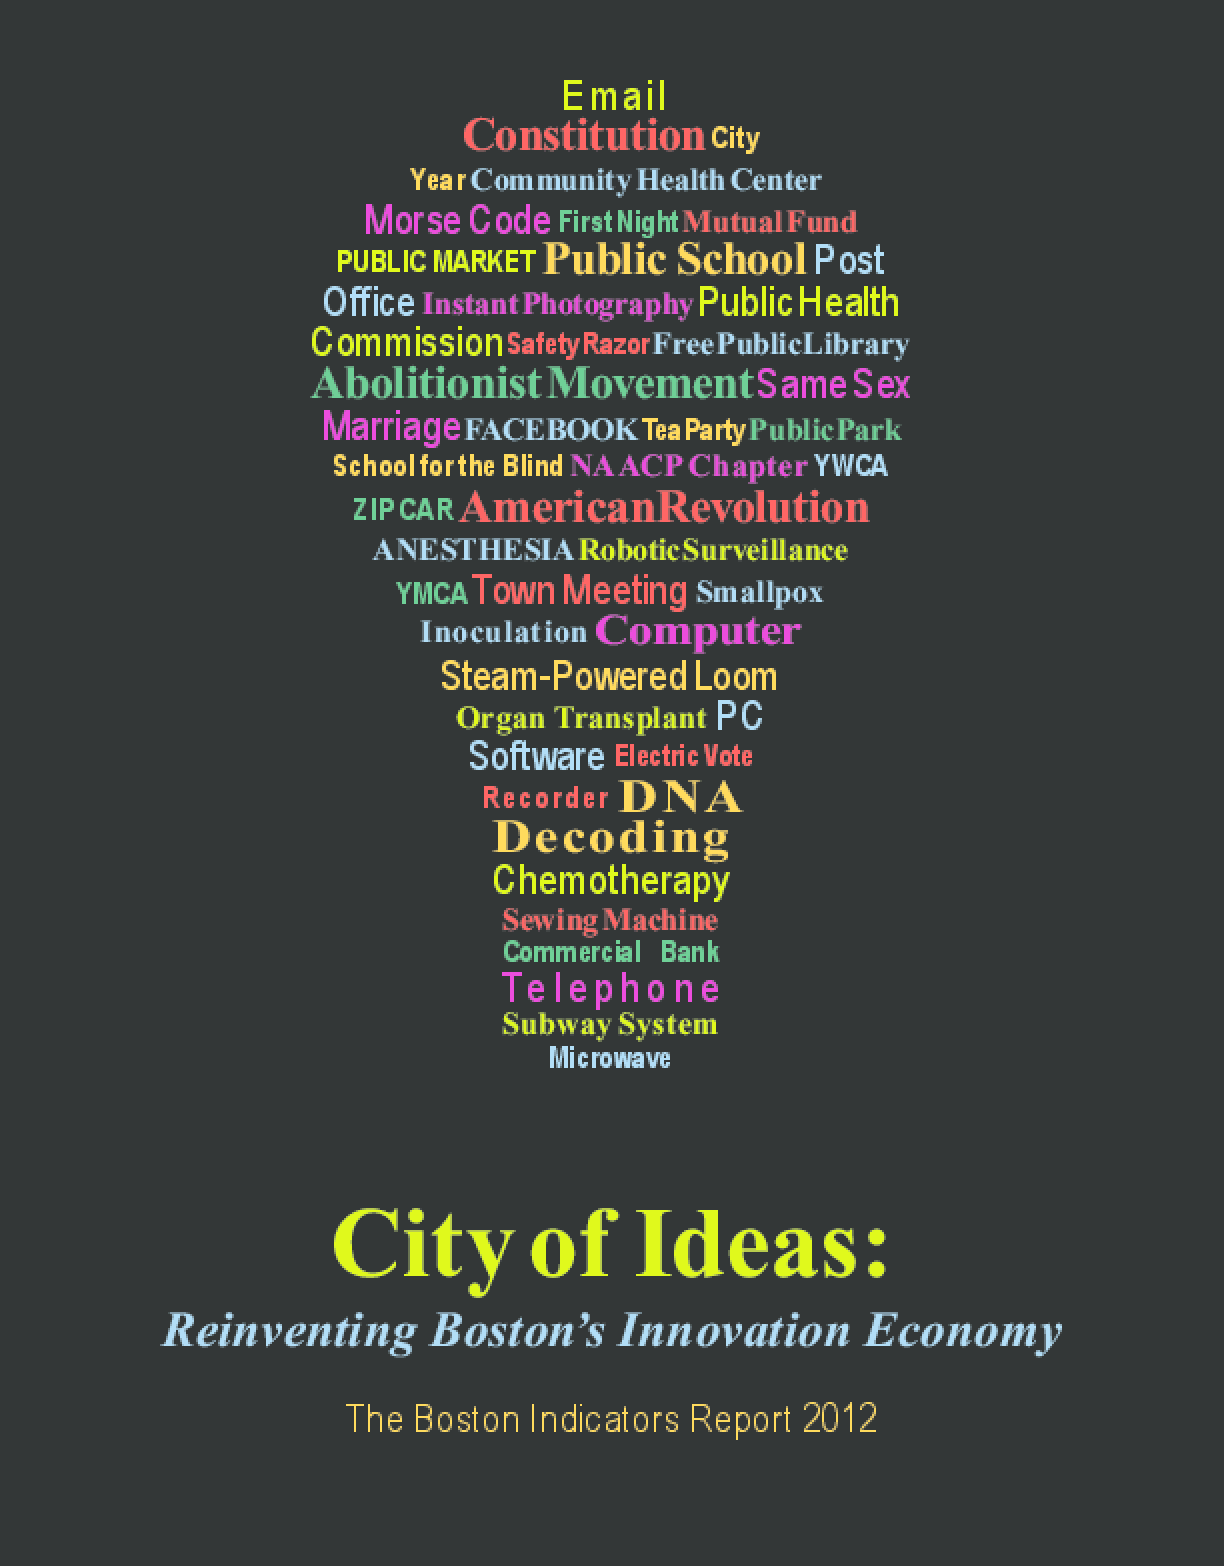 City of Ideas: Reinventing Boston's Innovation Economy: The Boston Indicators Report 2012